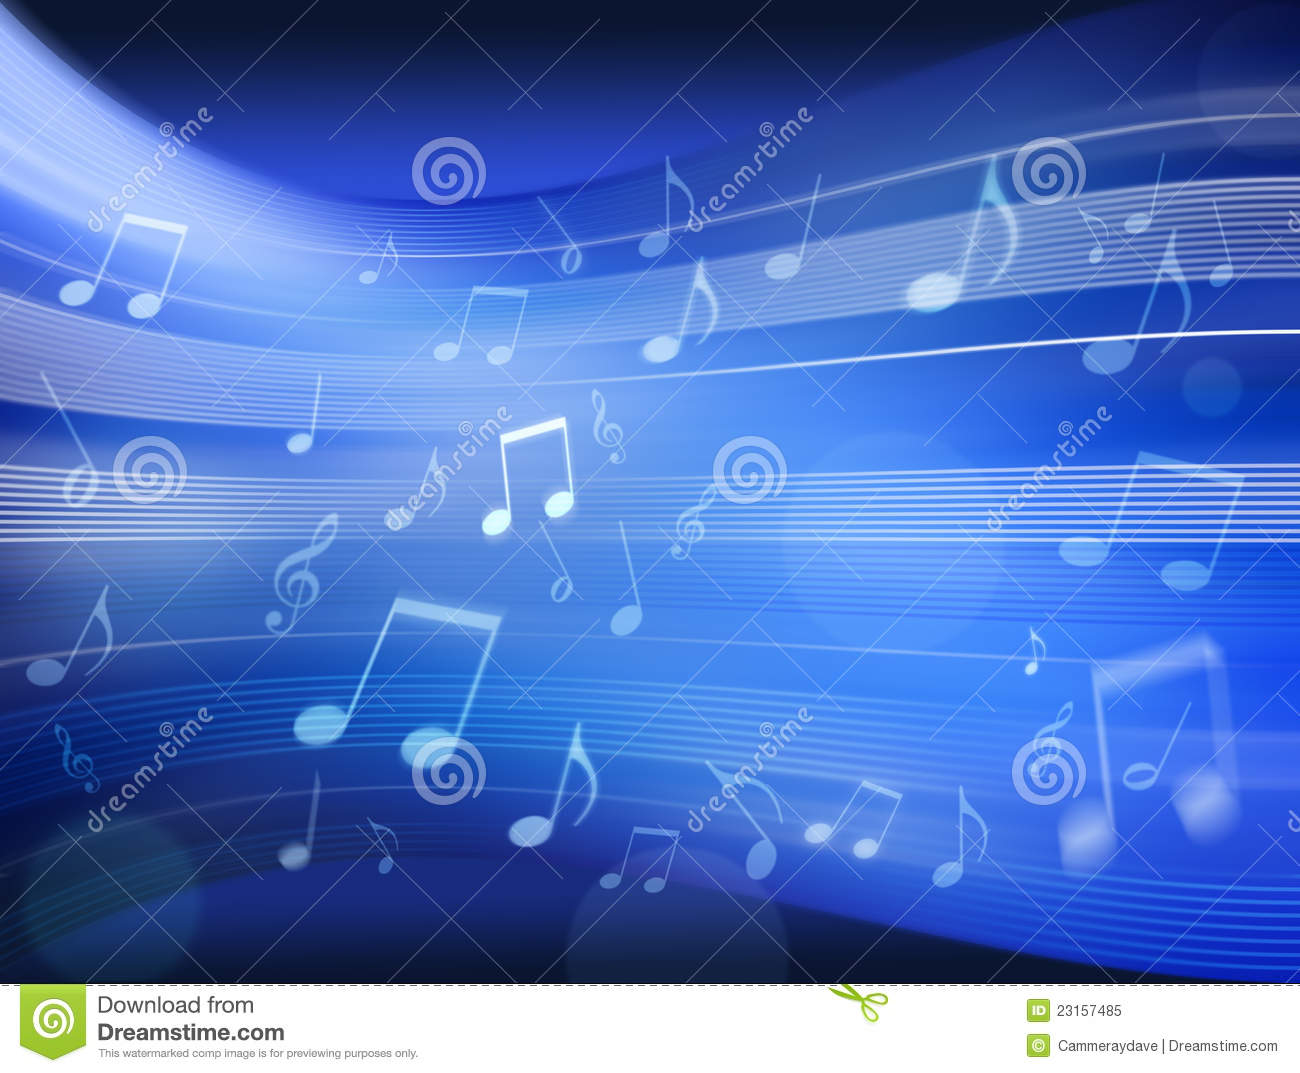 Music Background Images: Blue Music Notes Wallpaper